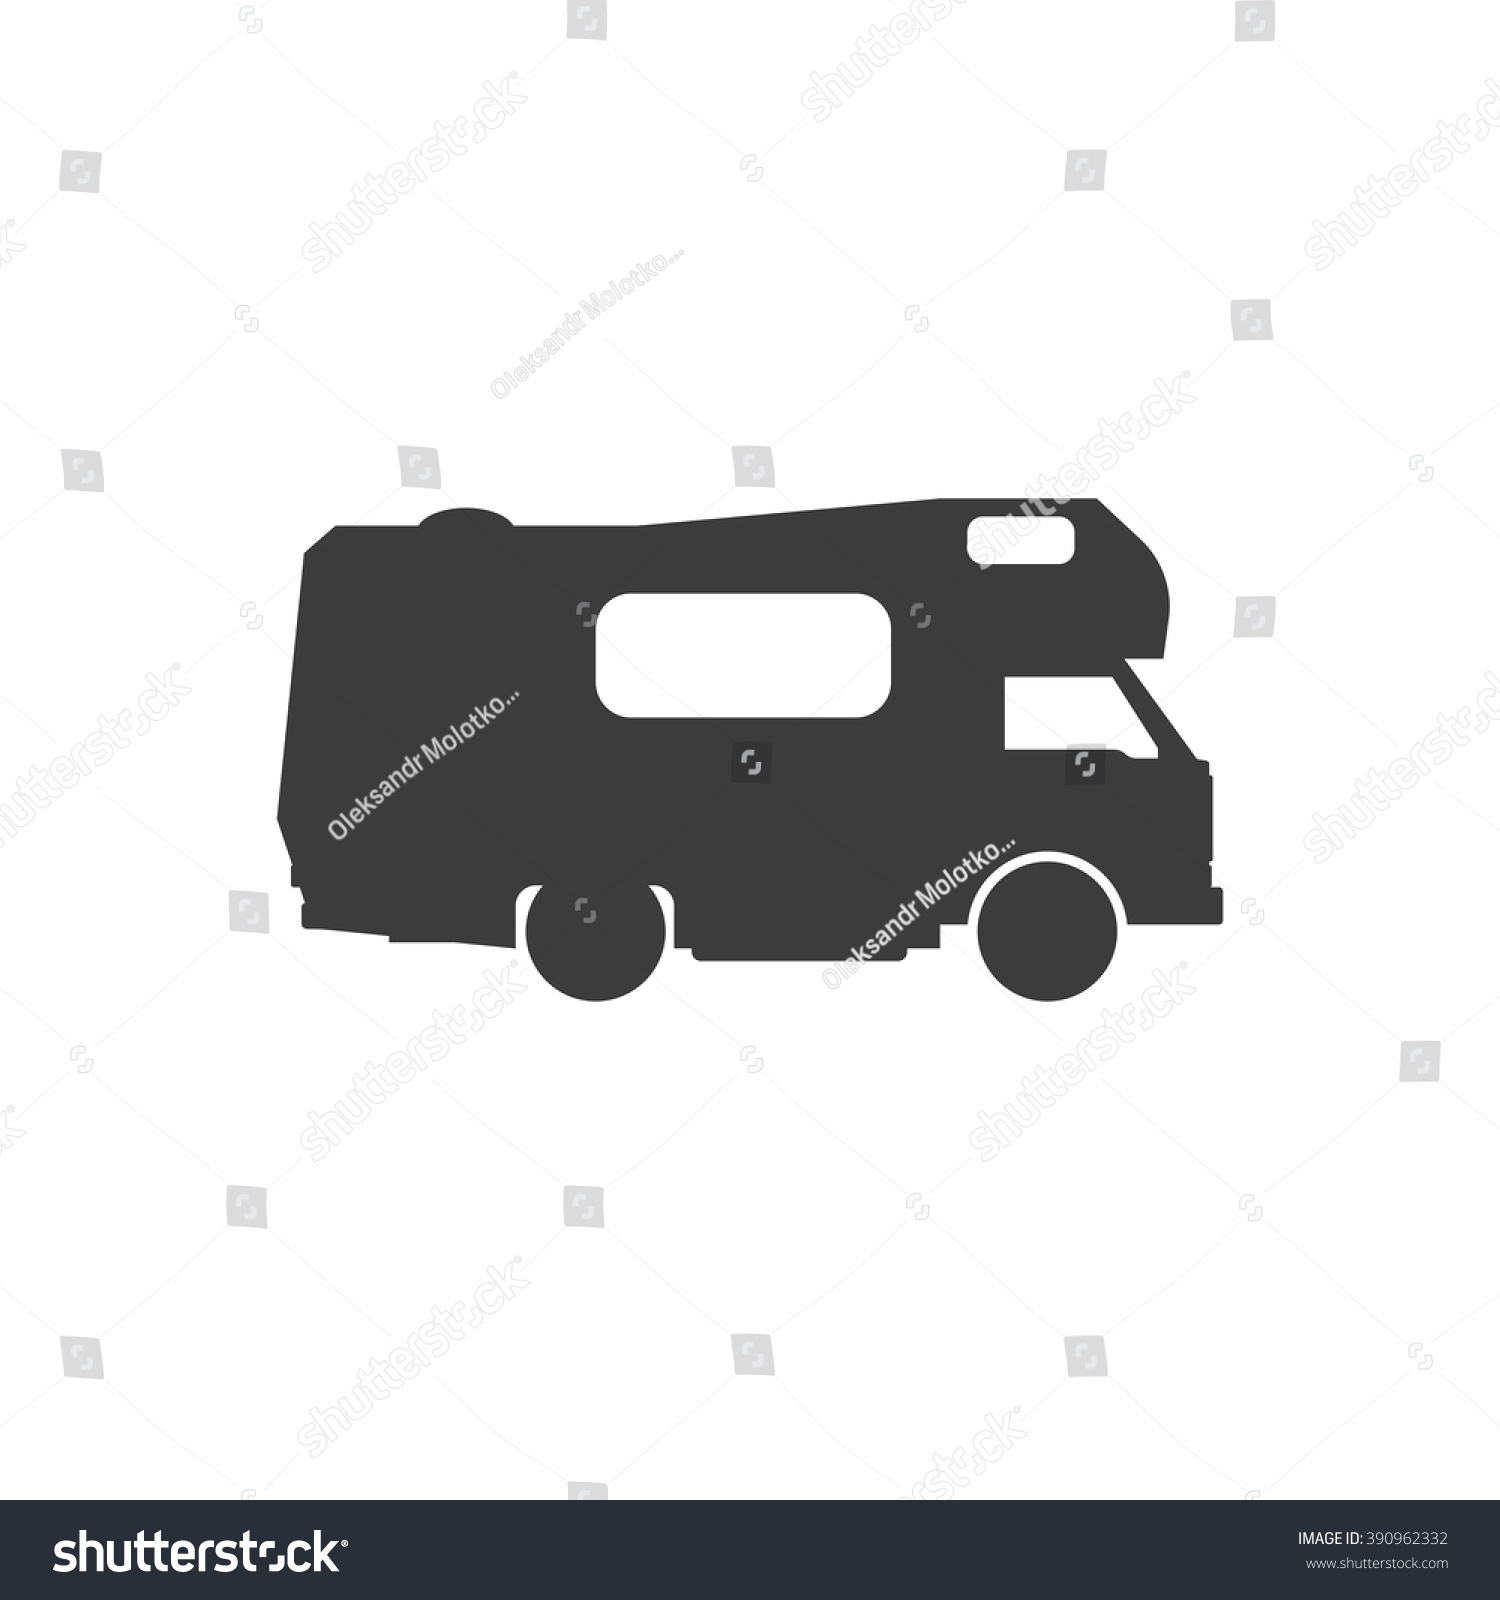 Vectors Illustrations Footage Music Recreational Motor Home Vehicle Camping Trailer Family Caravan Motorhome Car Rv Mobile